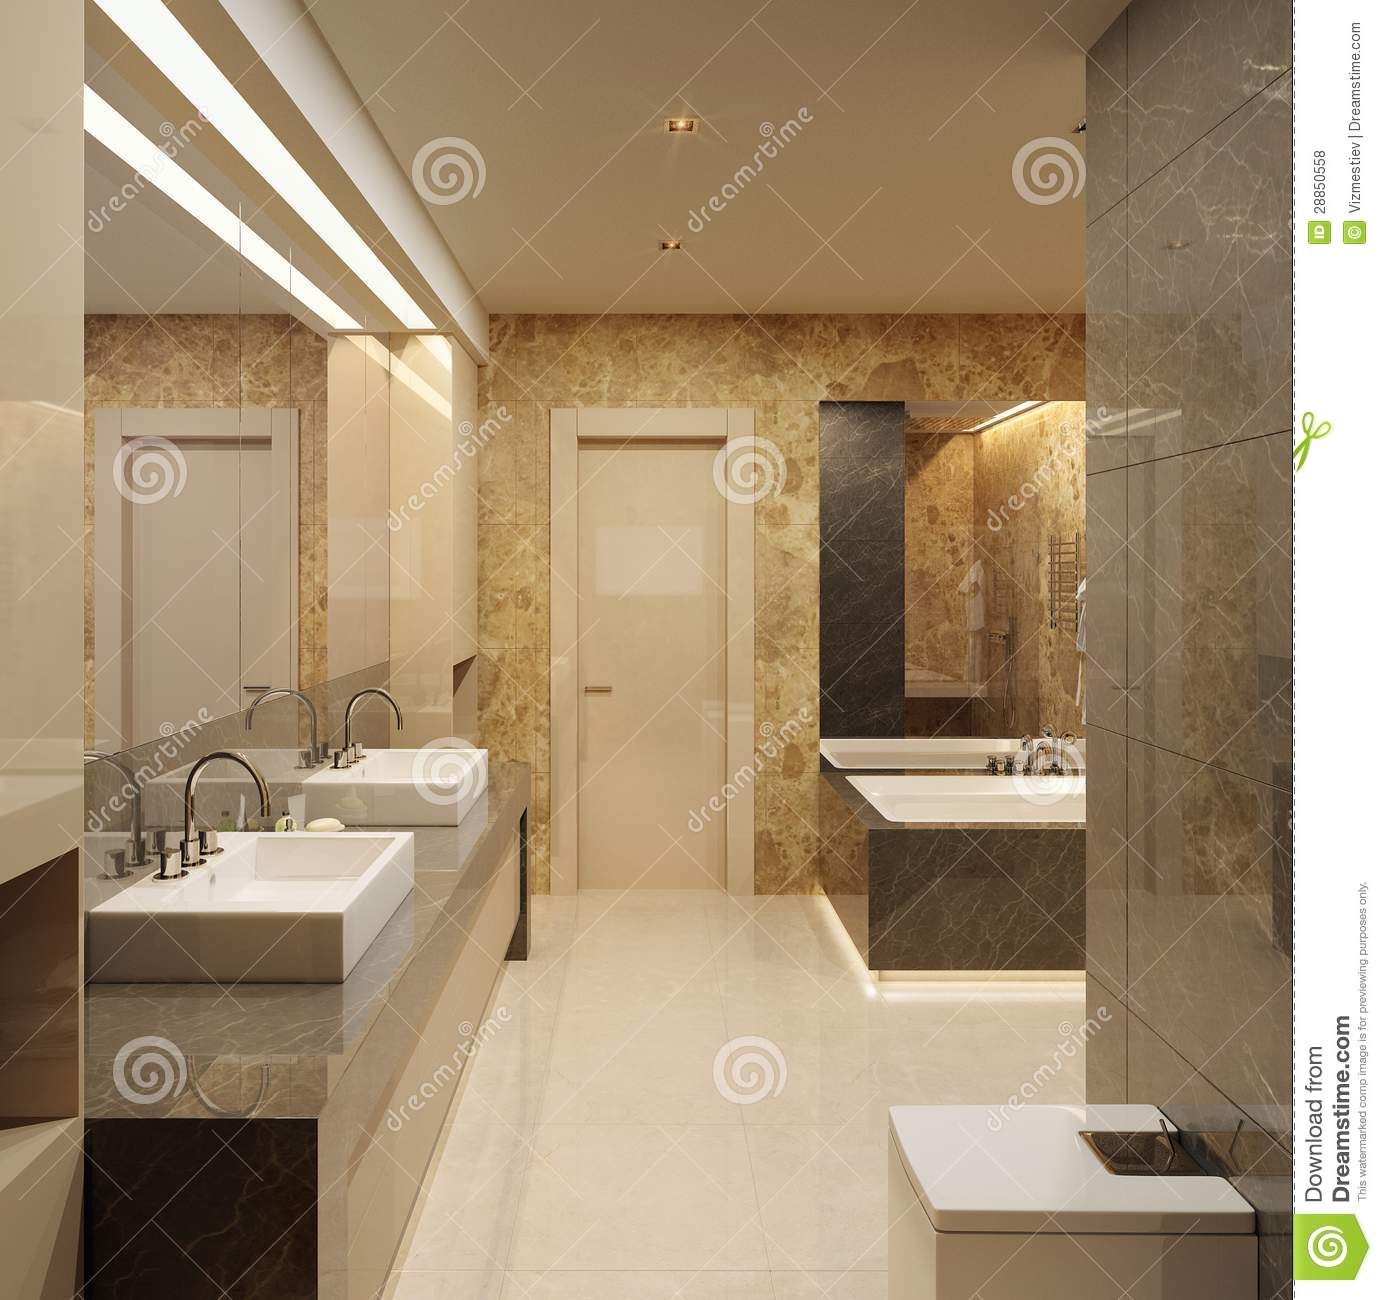 Luxury bathroom modern style stock illustration for Arredamenti di lusso moderni